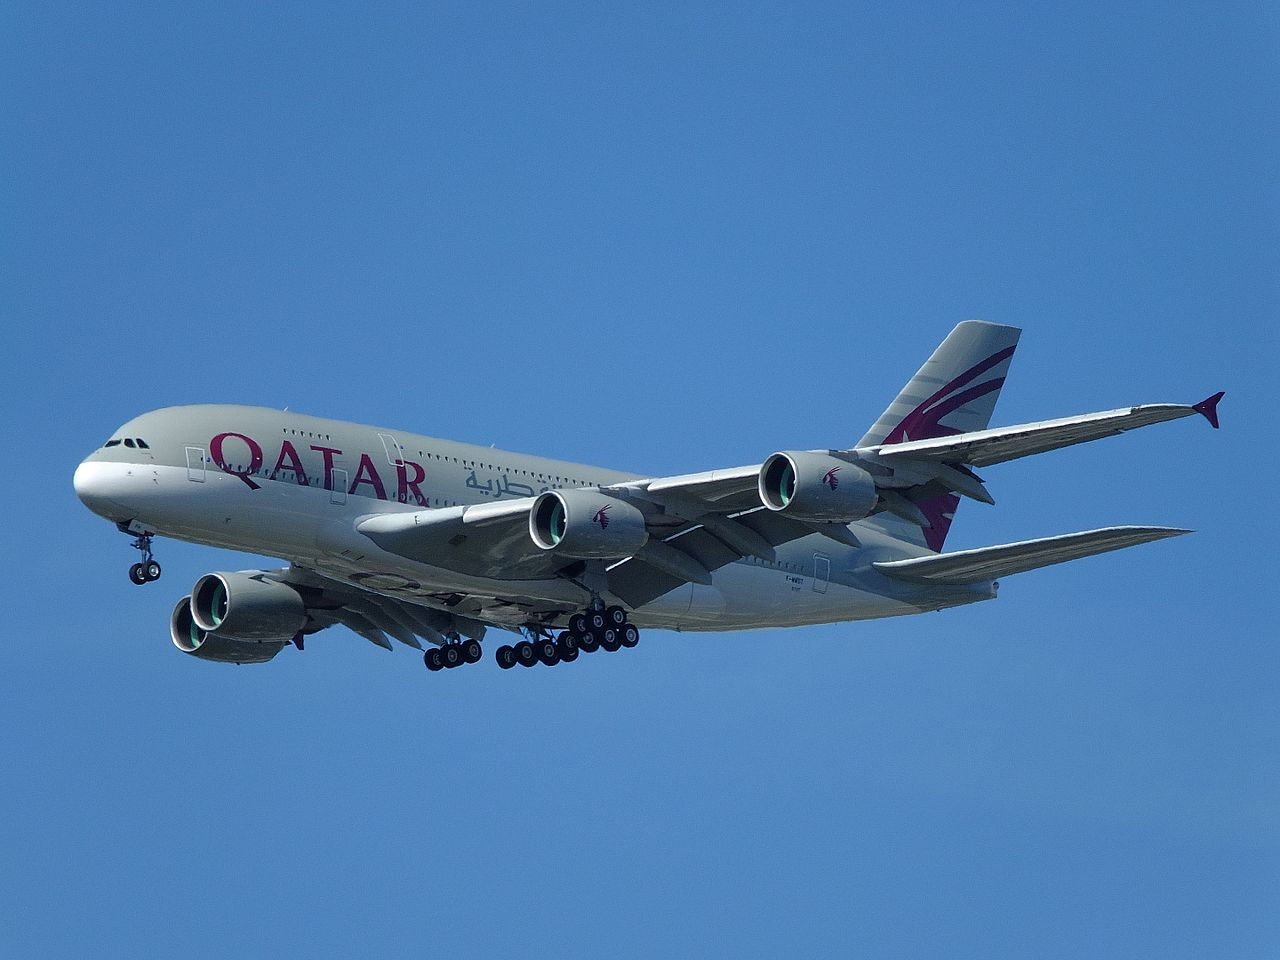 Qatar Airways: Caught in a political crisis - Leeham News